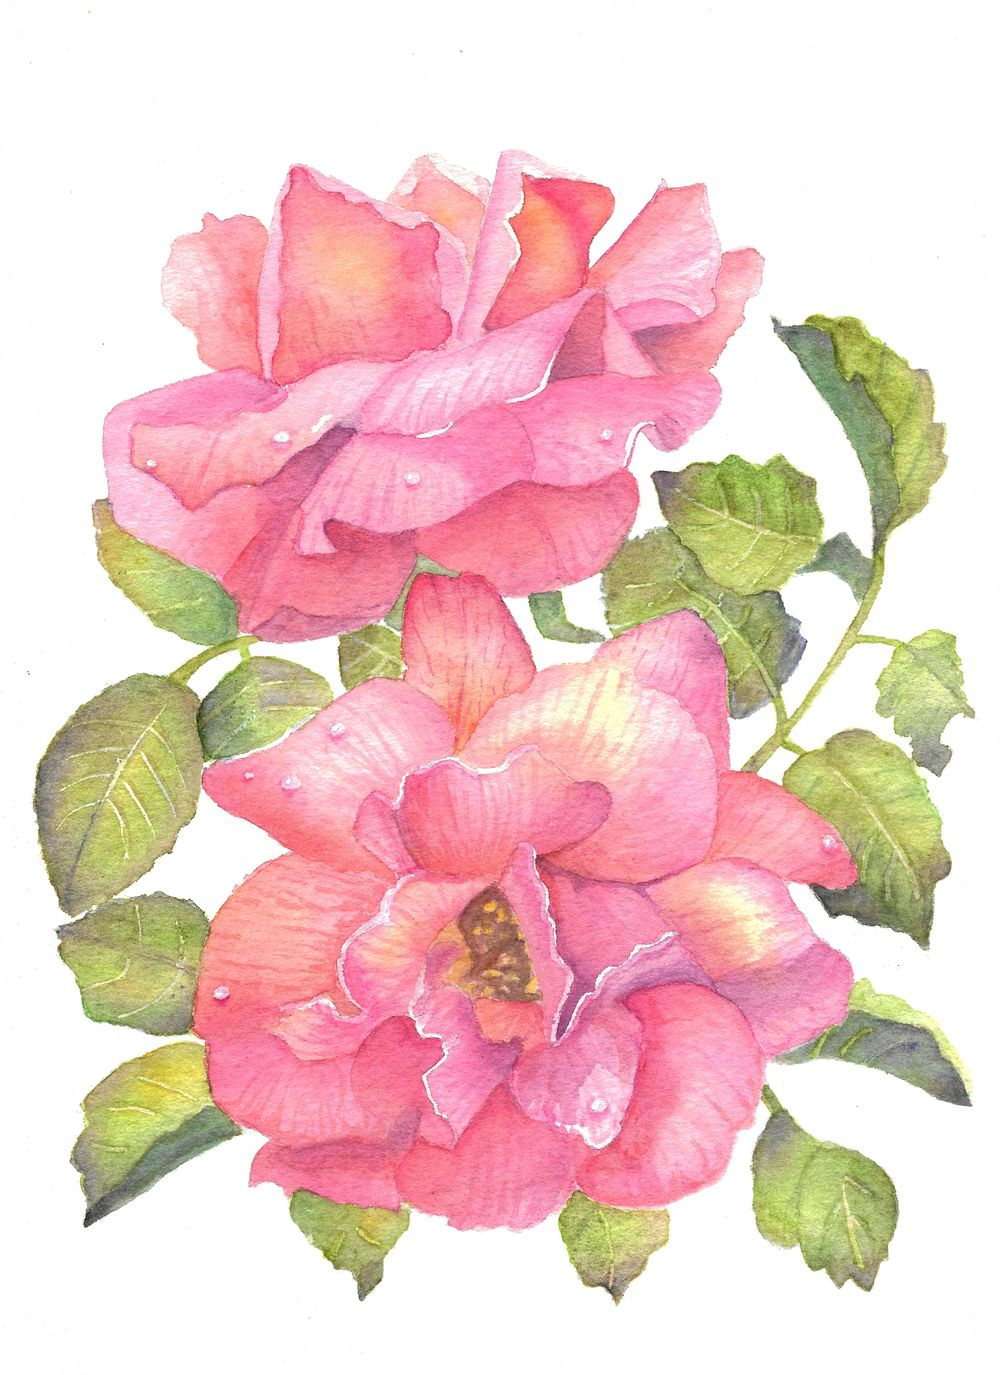 Coral roses - image 1 - student project